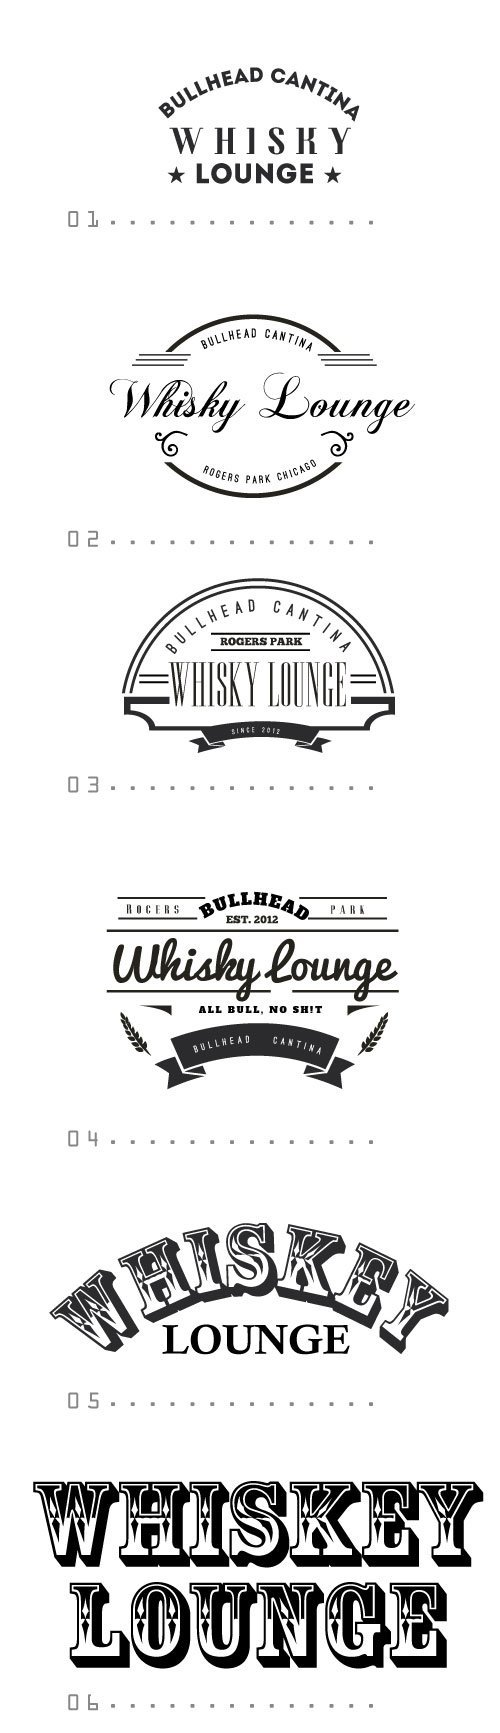 WhiskeyLounge-Comp02